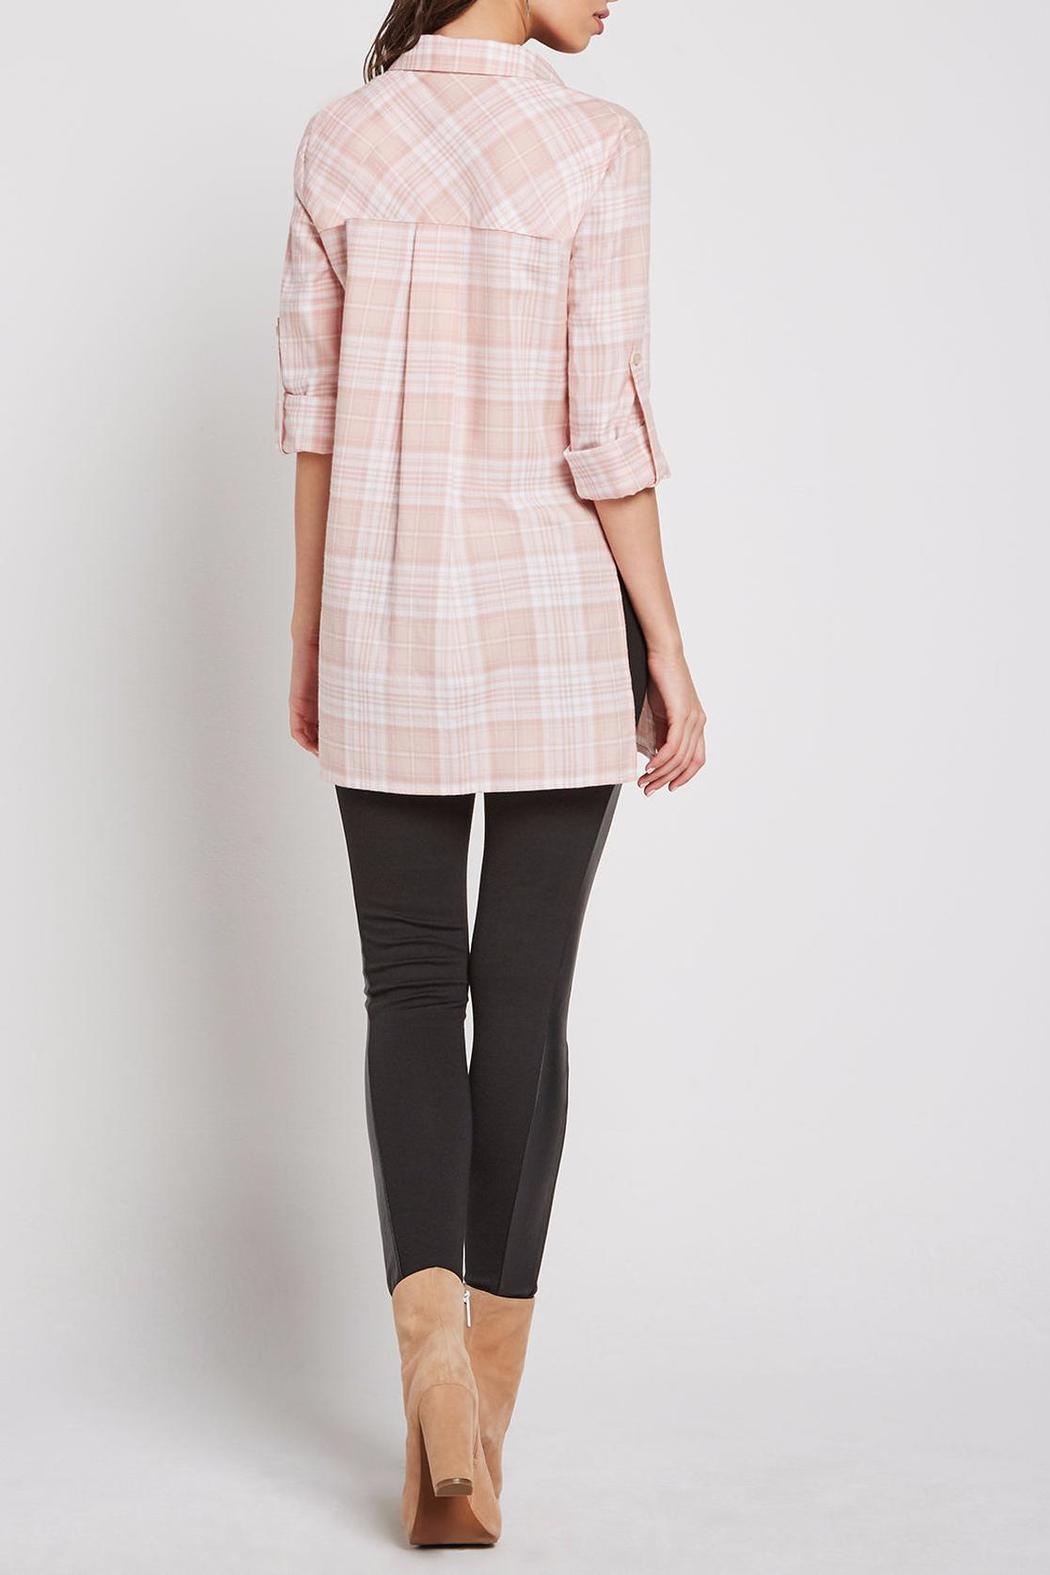 BCBGeneration Plaid Button Up Tunic - Front Full Image